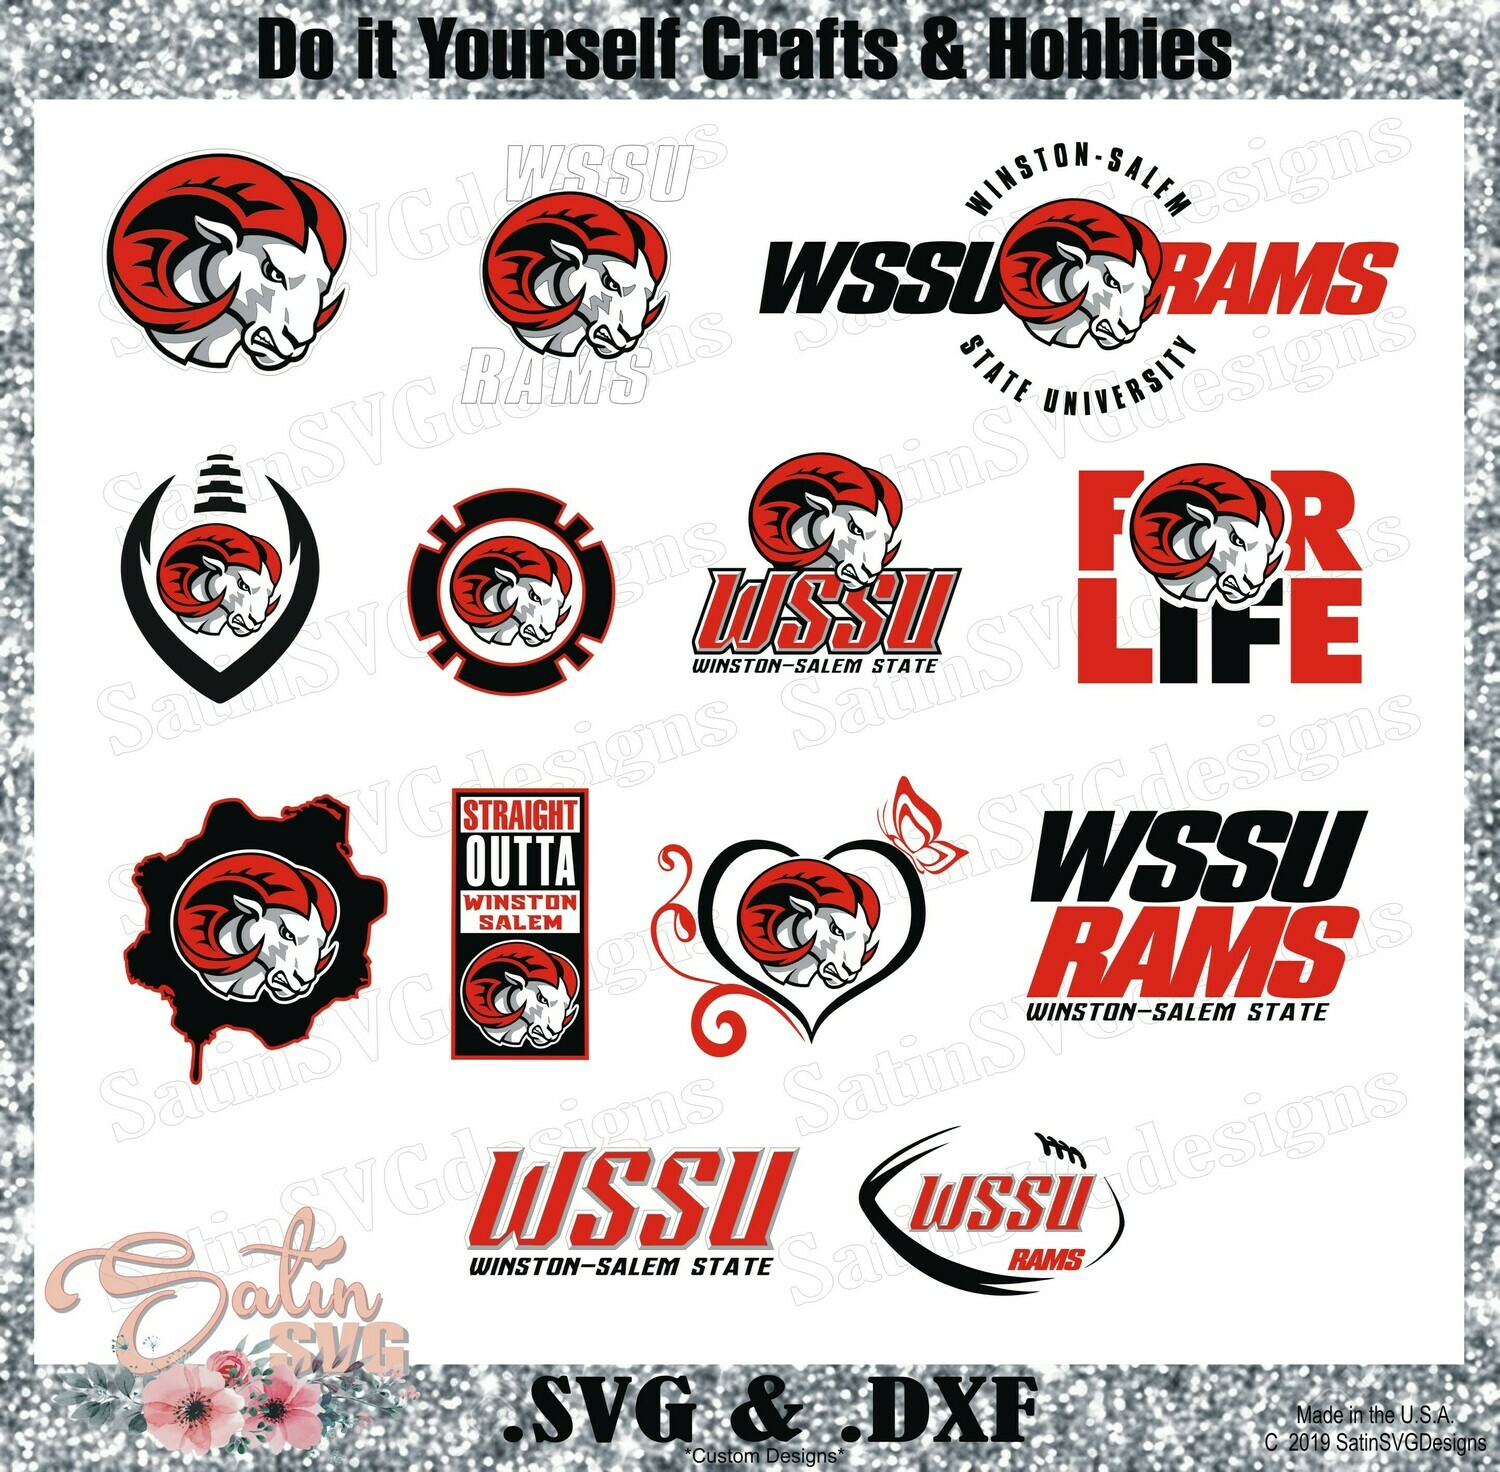 Winston Salem State University WSSU Rams NEW Custom Designs. SVG Files, Cricut, Silhouette Studio, Digital Cut Files, Infusible Ink